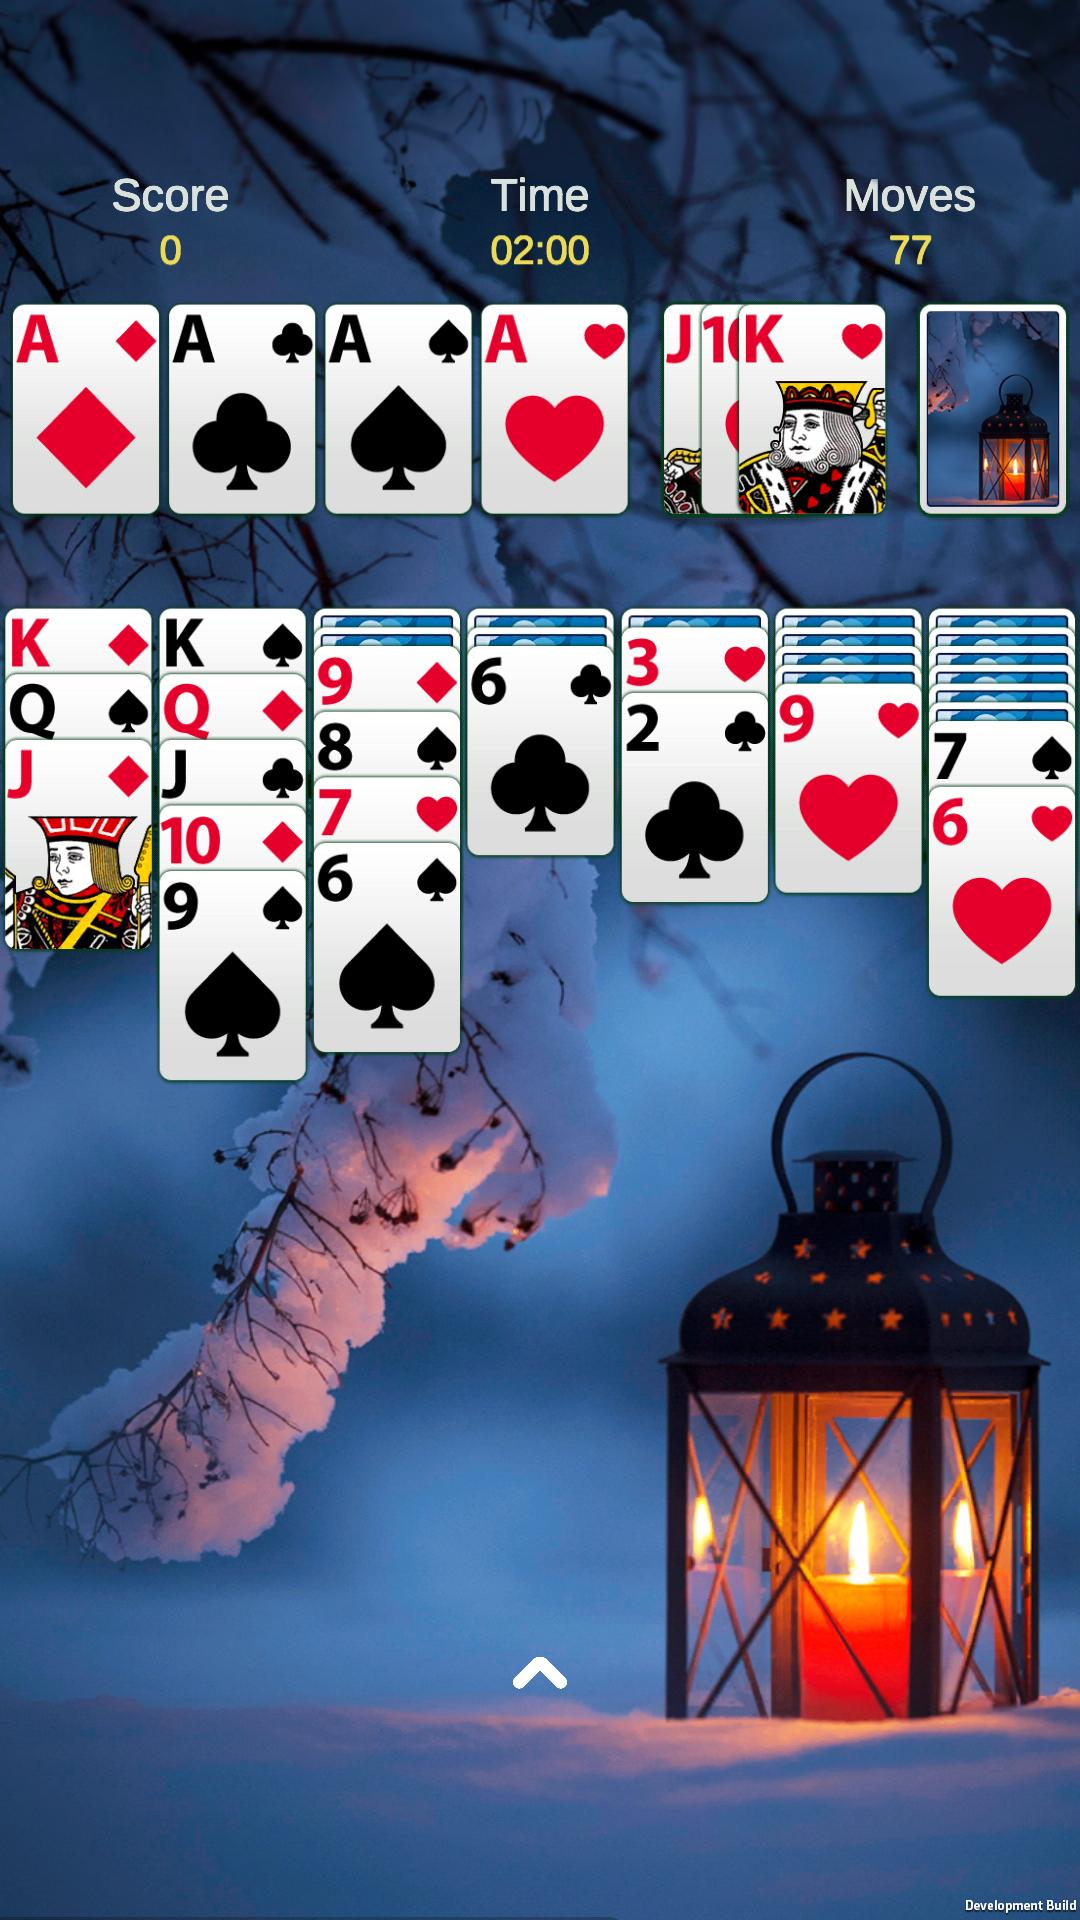 Solitaire - Free Classic Solitaire Card Games 1.8.5 Screenshot 3